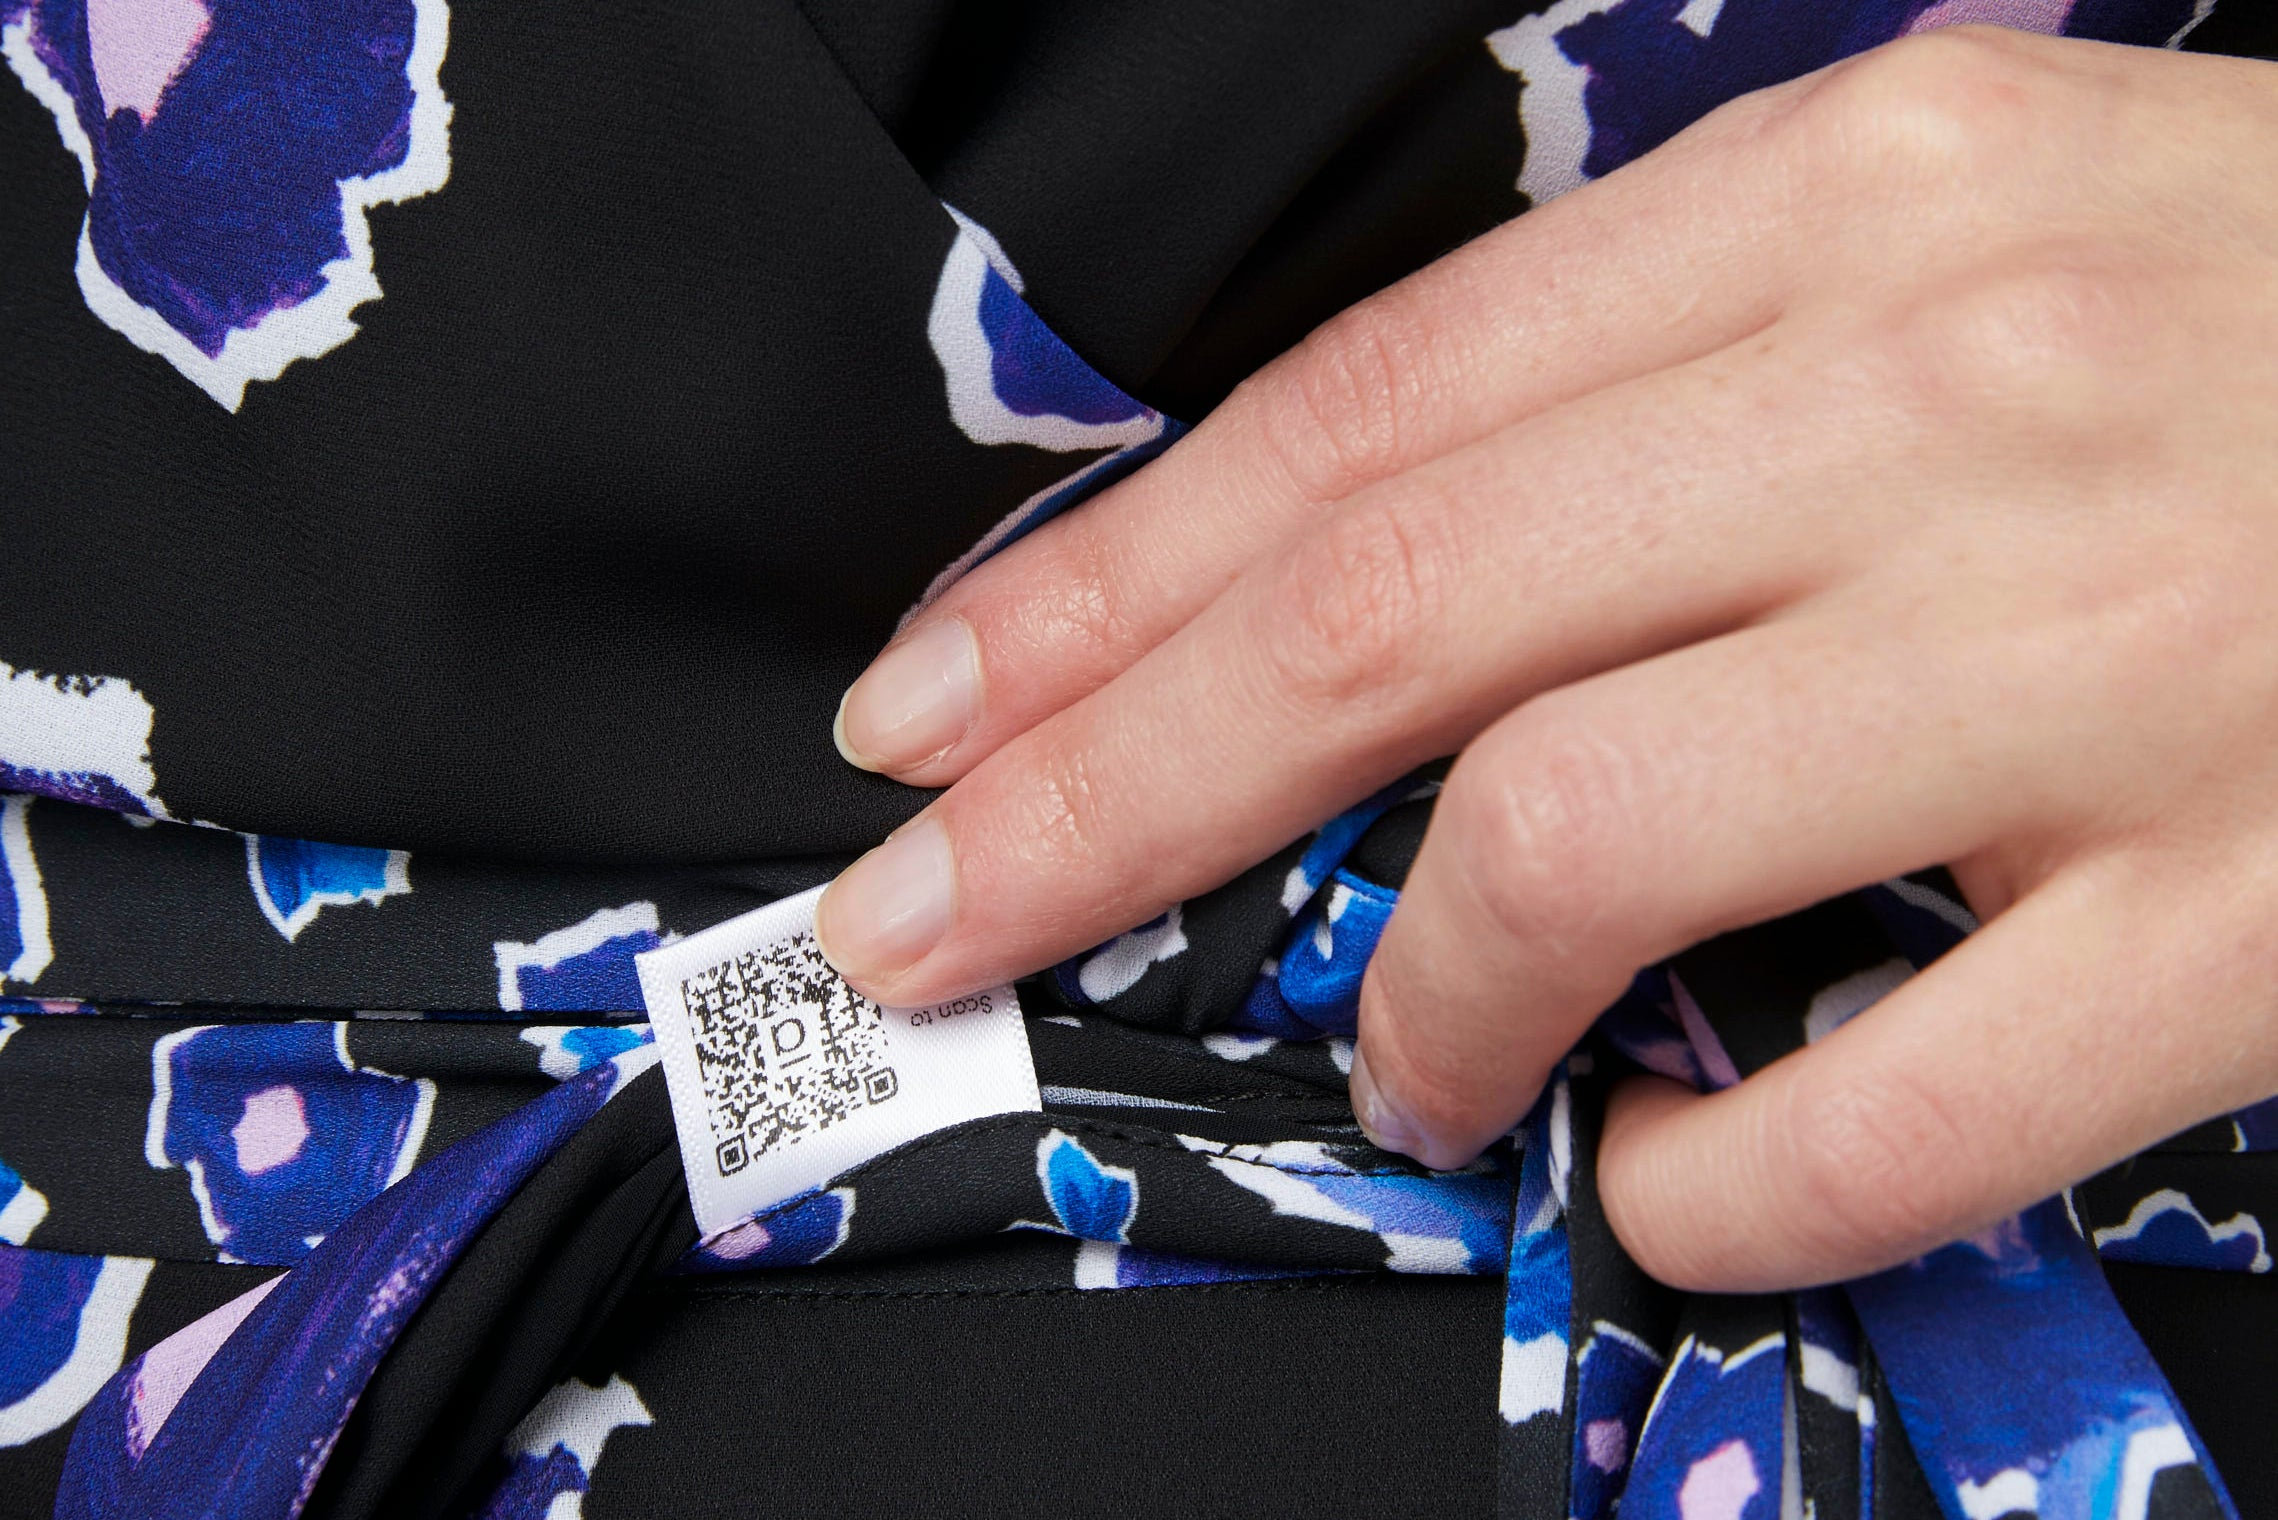 Close up of a QR code printed on a dress label